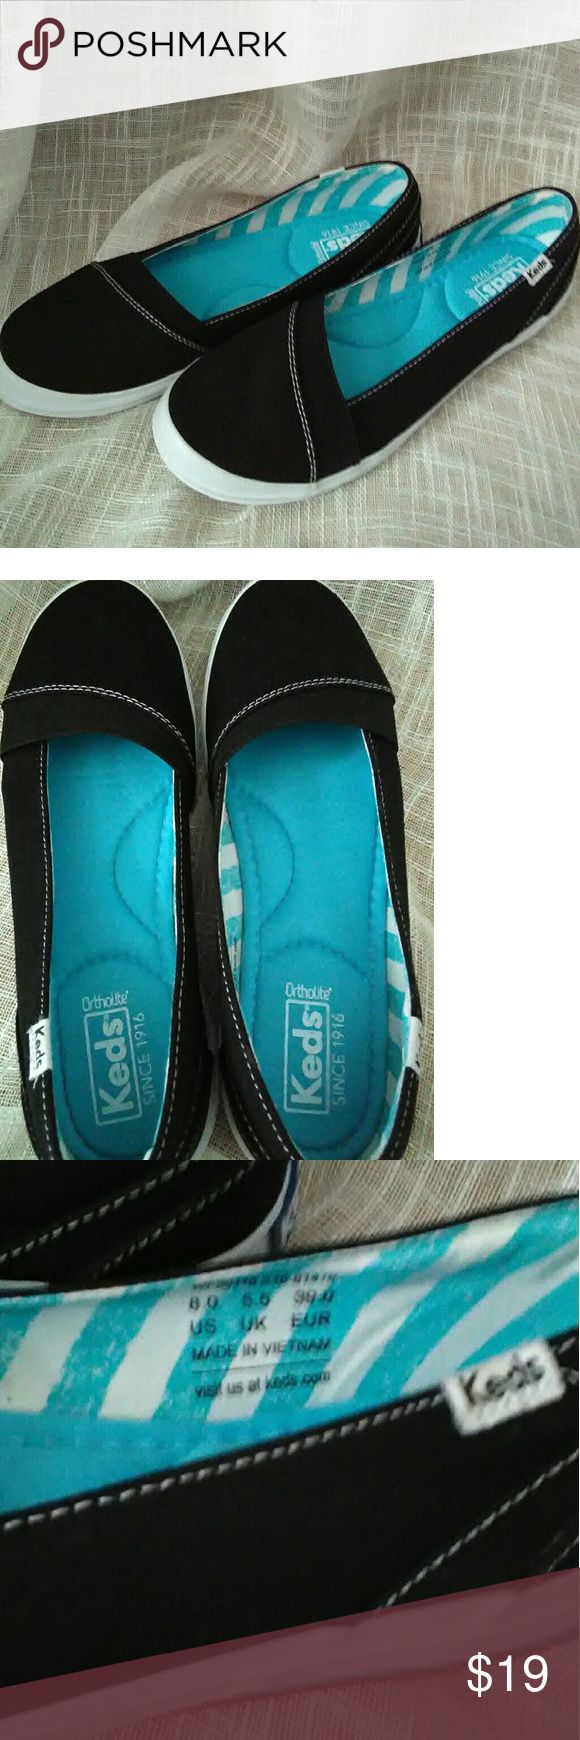 NWOT  Keds Black Slip Ons (8) This is a new without tags pair of Keds slip ons in black Size 8. There is no wear,    or marks just to small for me.  They have soft cushion inside to make them extra comfy.   Very cute!   Thank you for stopping by and looking! Keds Shoes Flats & Loafers